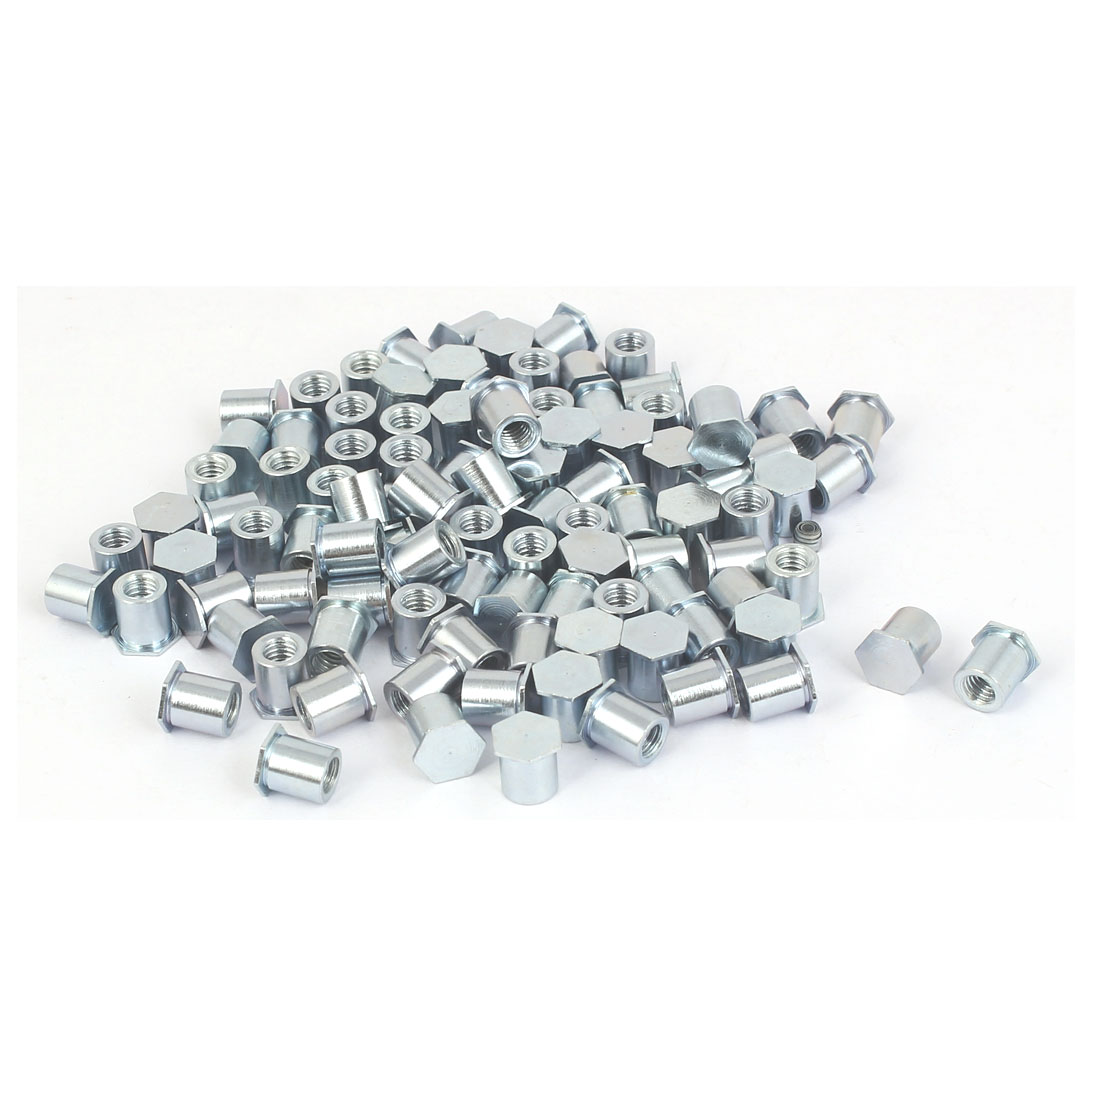 M4x7mm Full Thread Hex Head Carbon Steel Blind Self Clinching Standoffs 100 Pcs